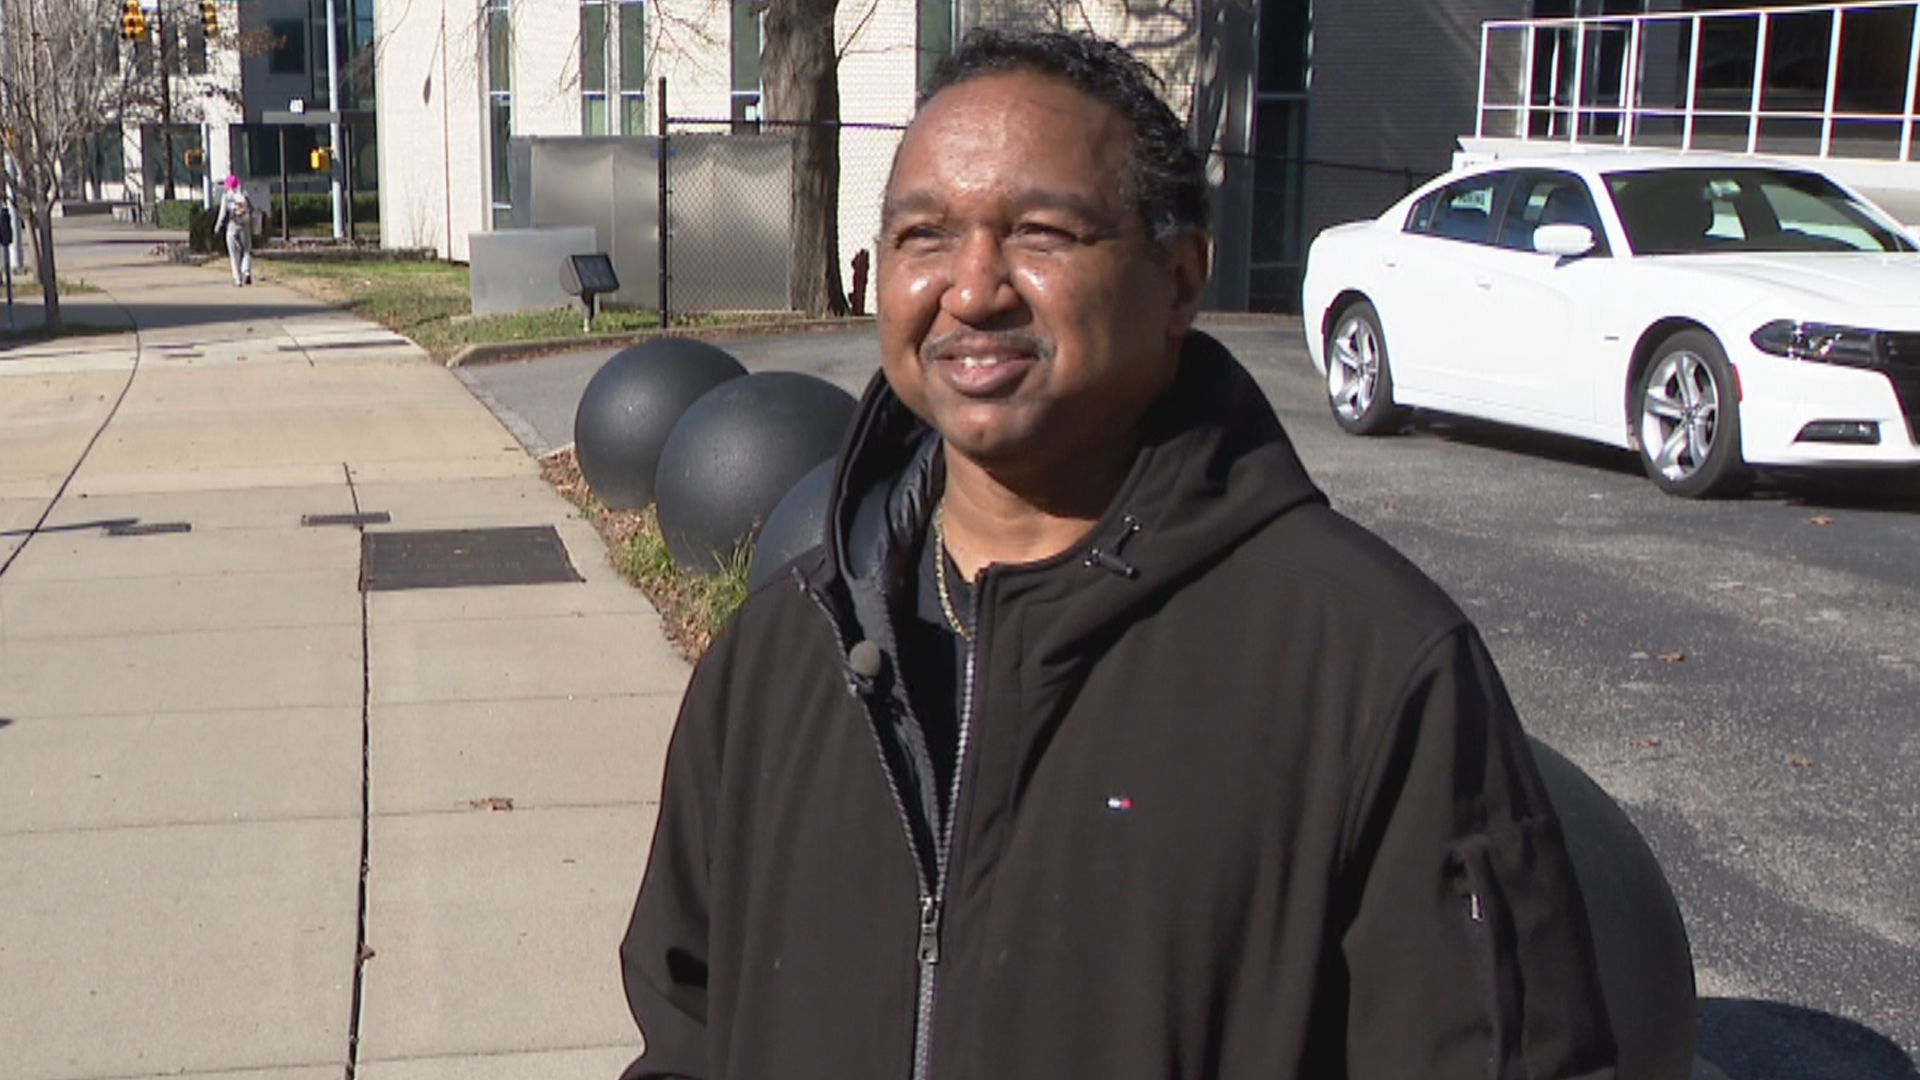 Nashville Uber driver awarded for great service